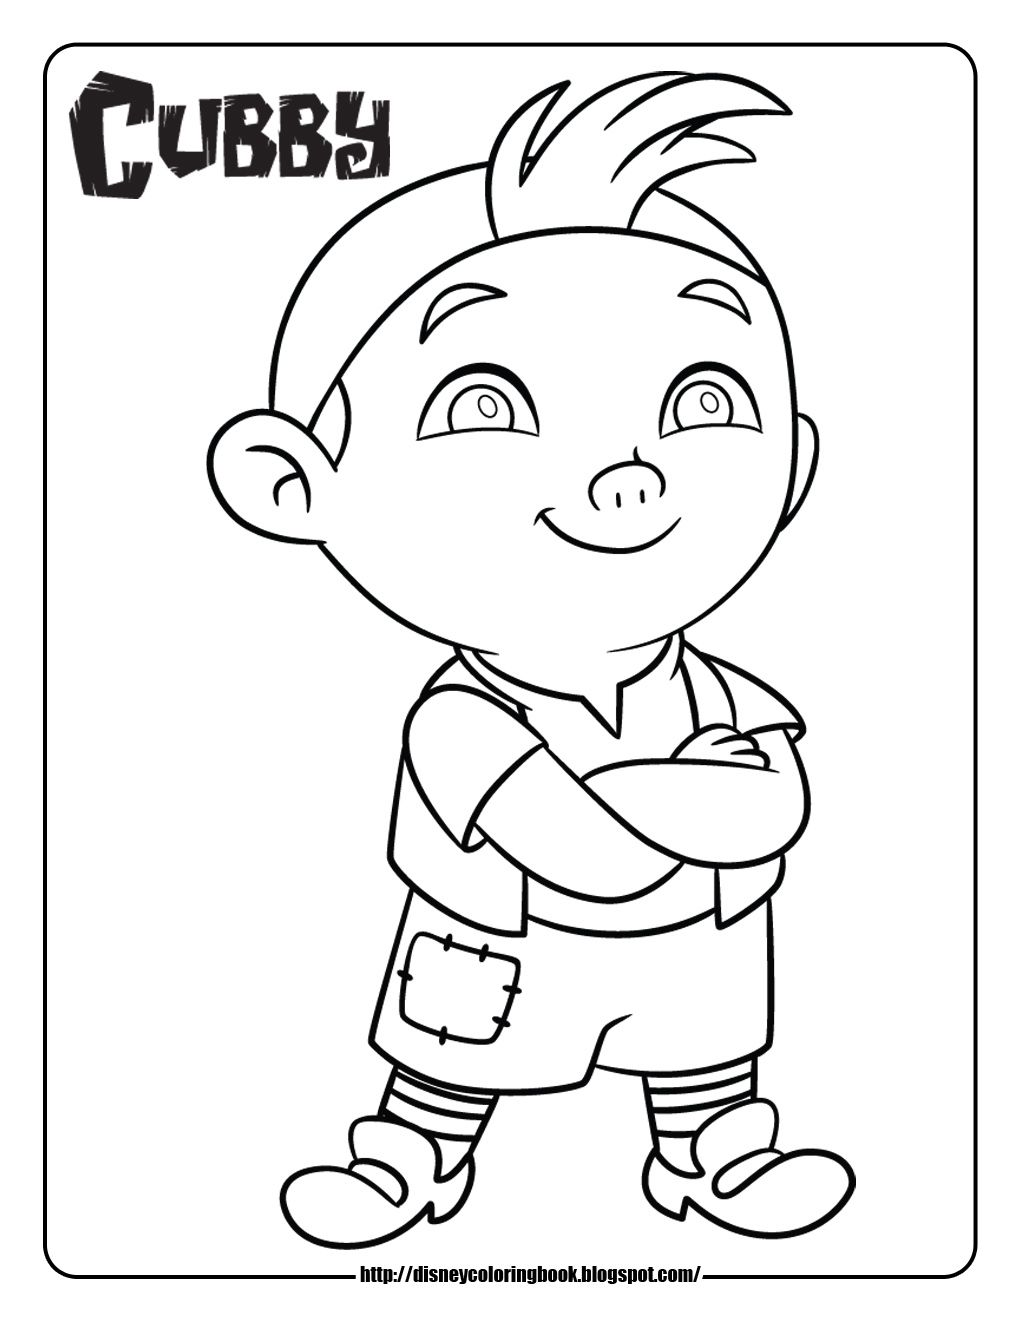 Color crew printables - Disney Coloring Pages And Sheets For Kids Jake And The Neverland Pirates Free Disney Coloring Sheets